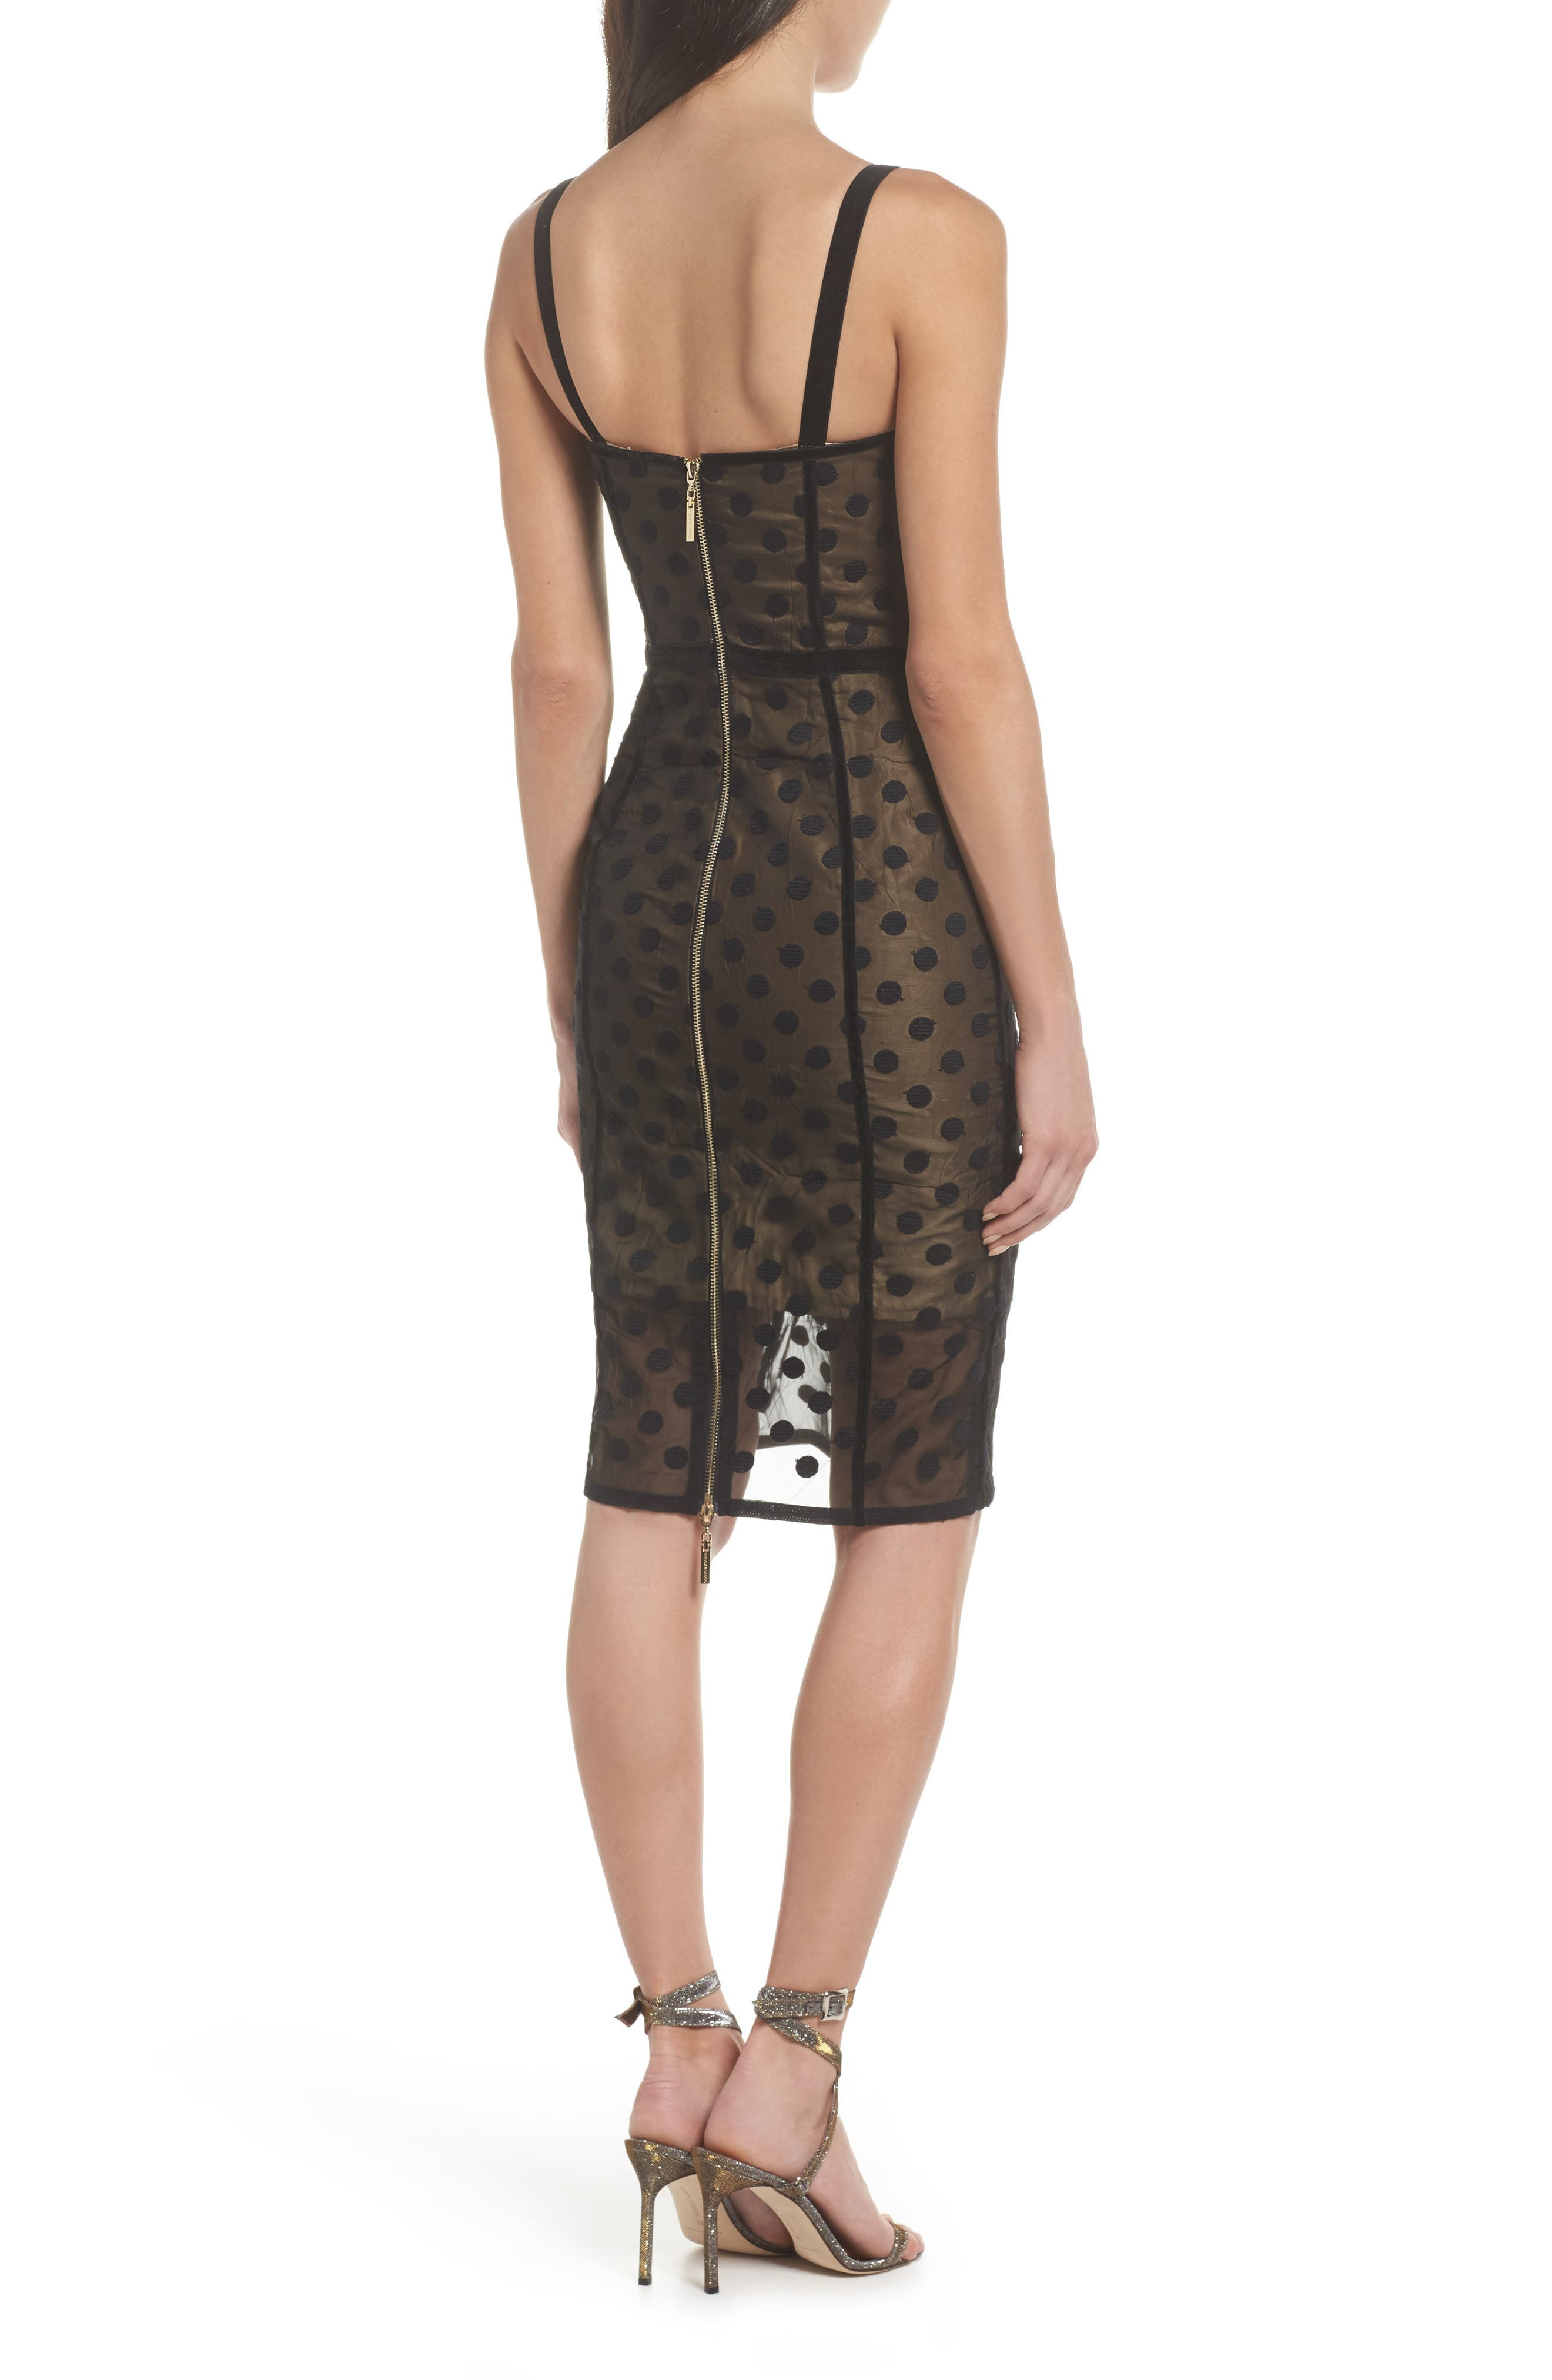 Isabella Noir Dot Embroidered Body-Con Dress,                             Alternate thumbnail 5, color,                             Black/ Nude